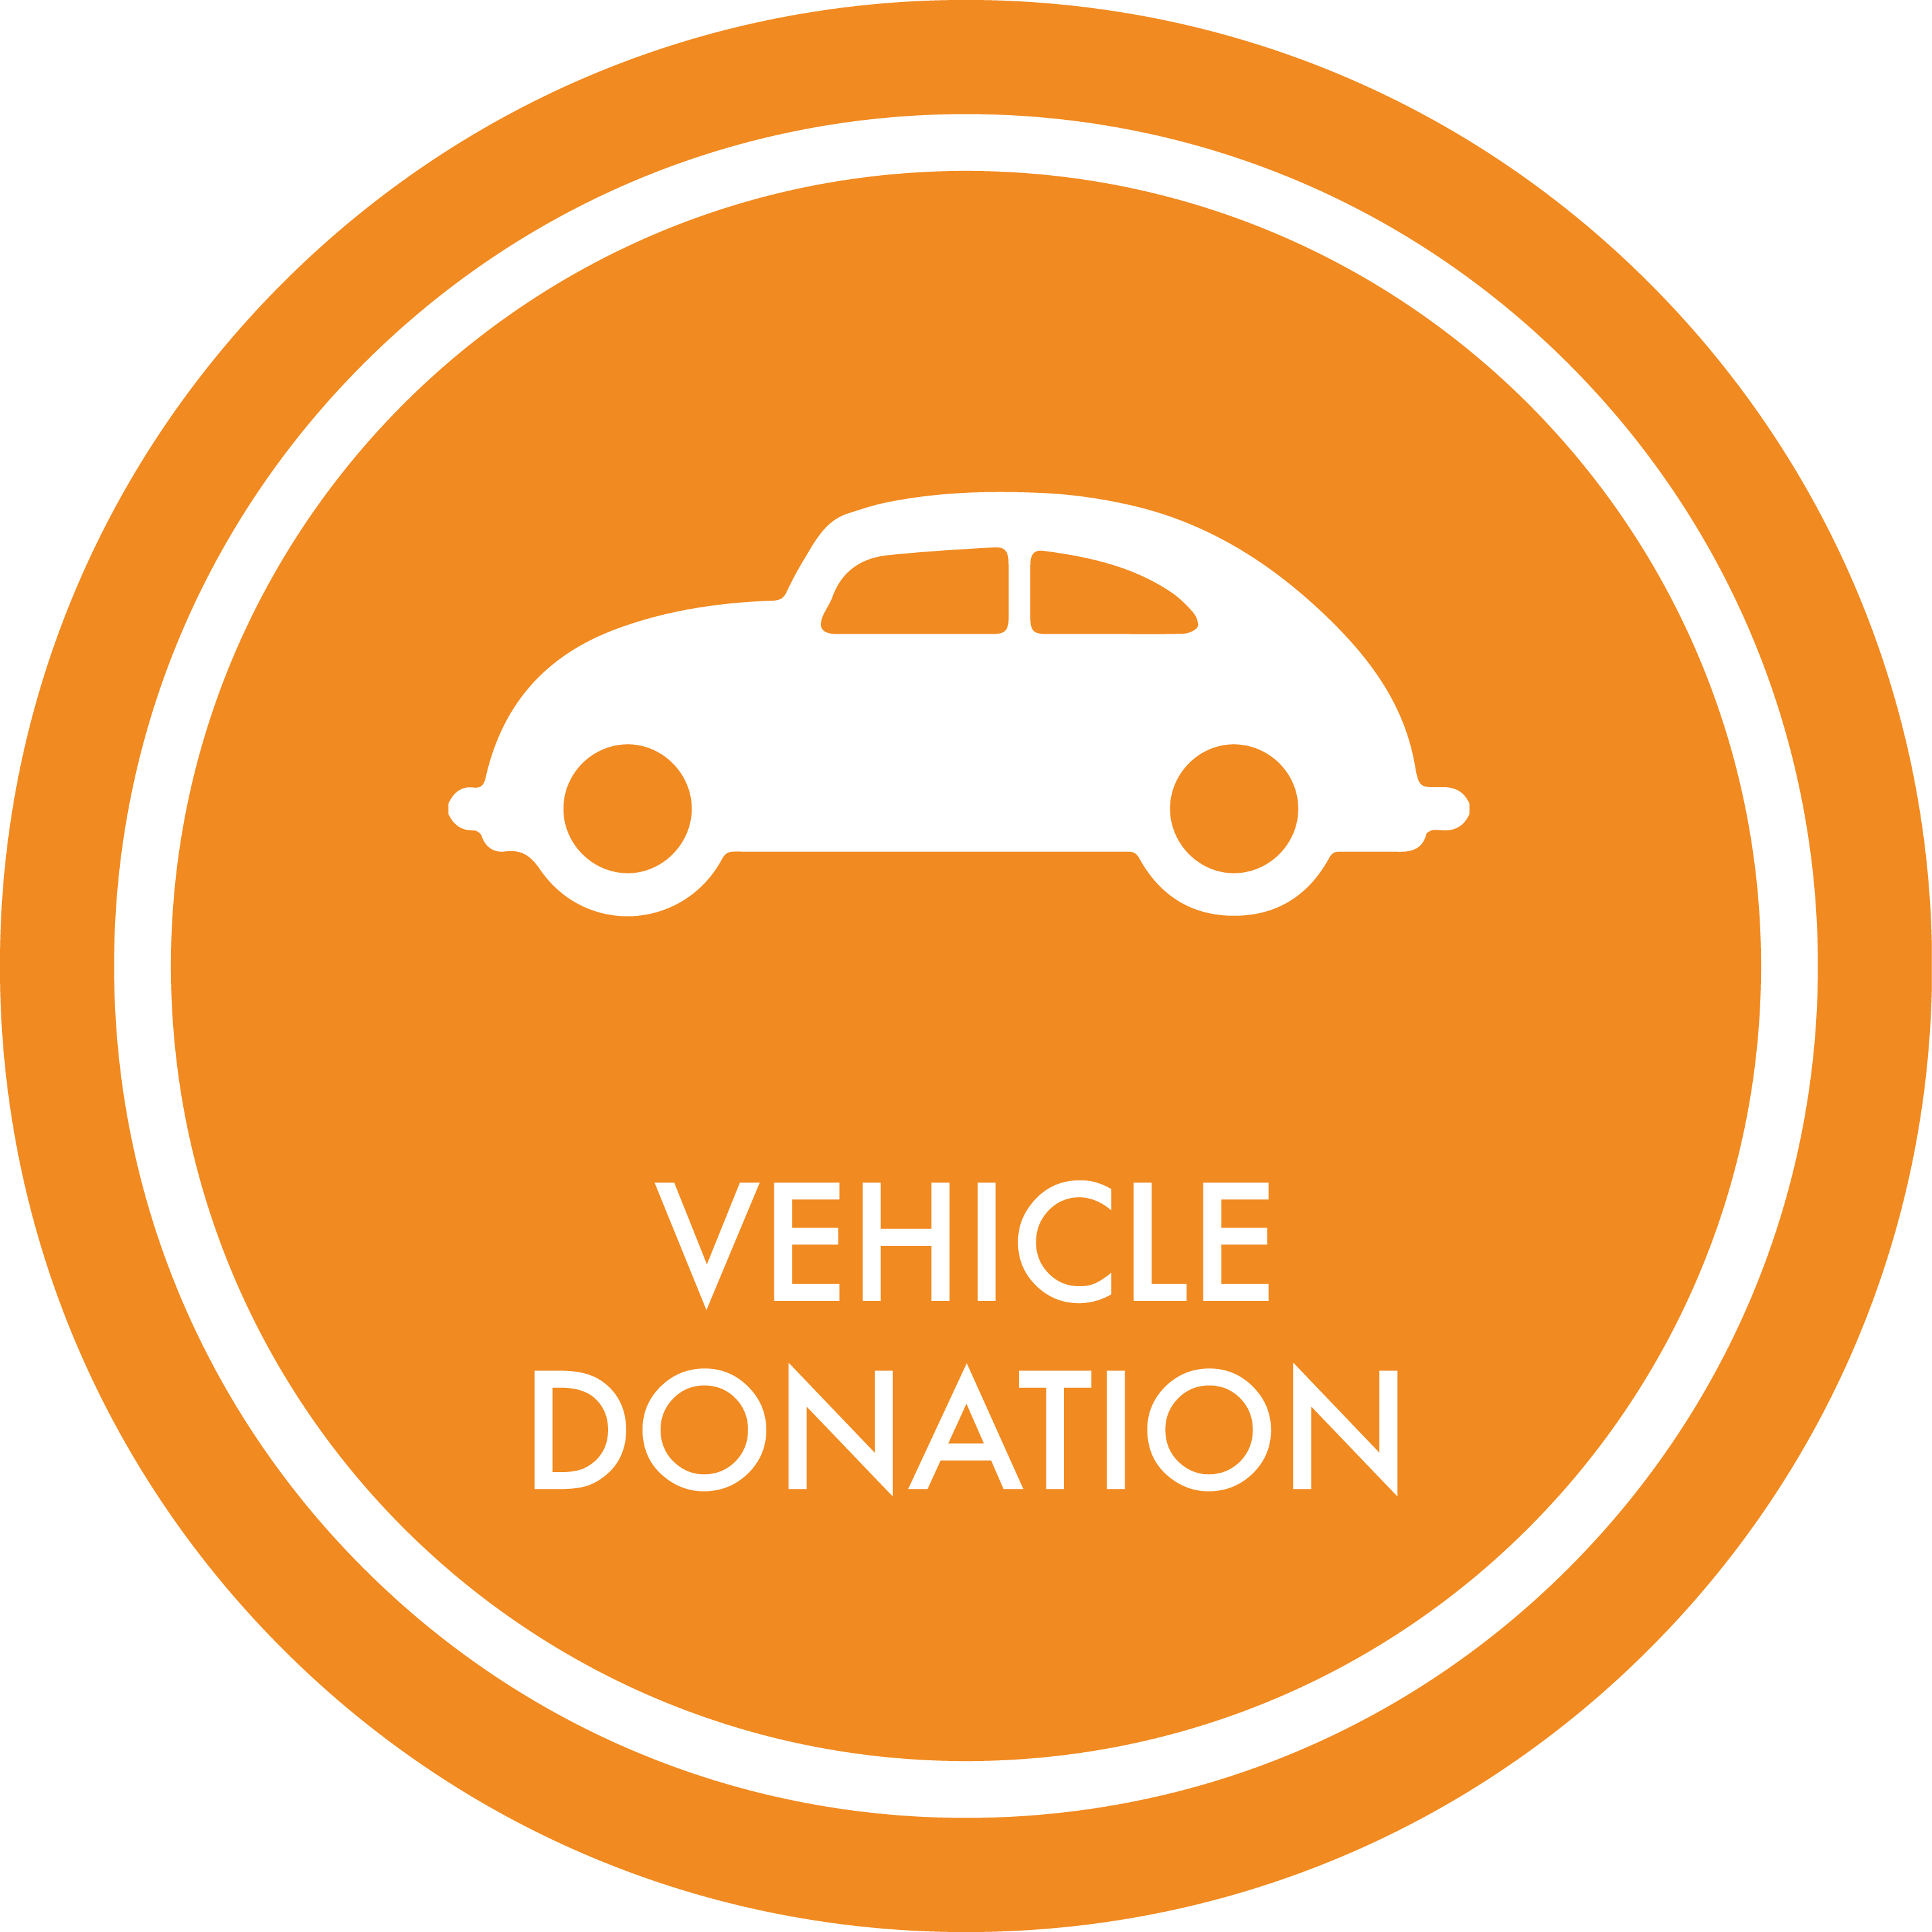 Vehicle Donation